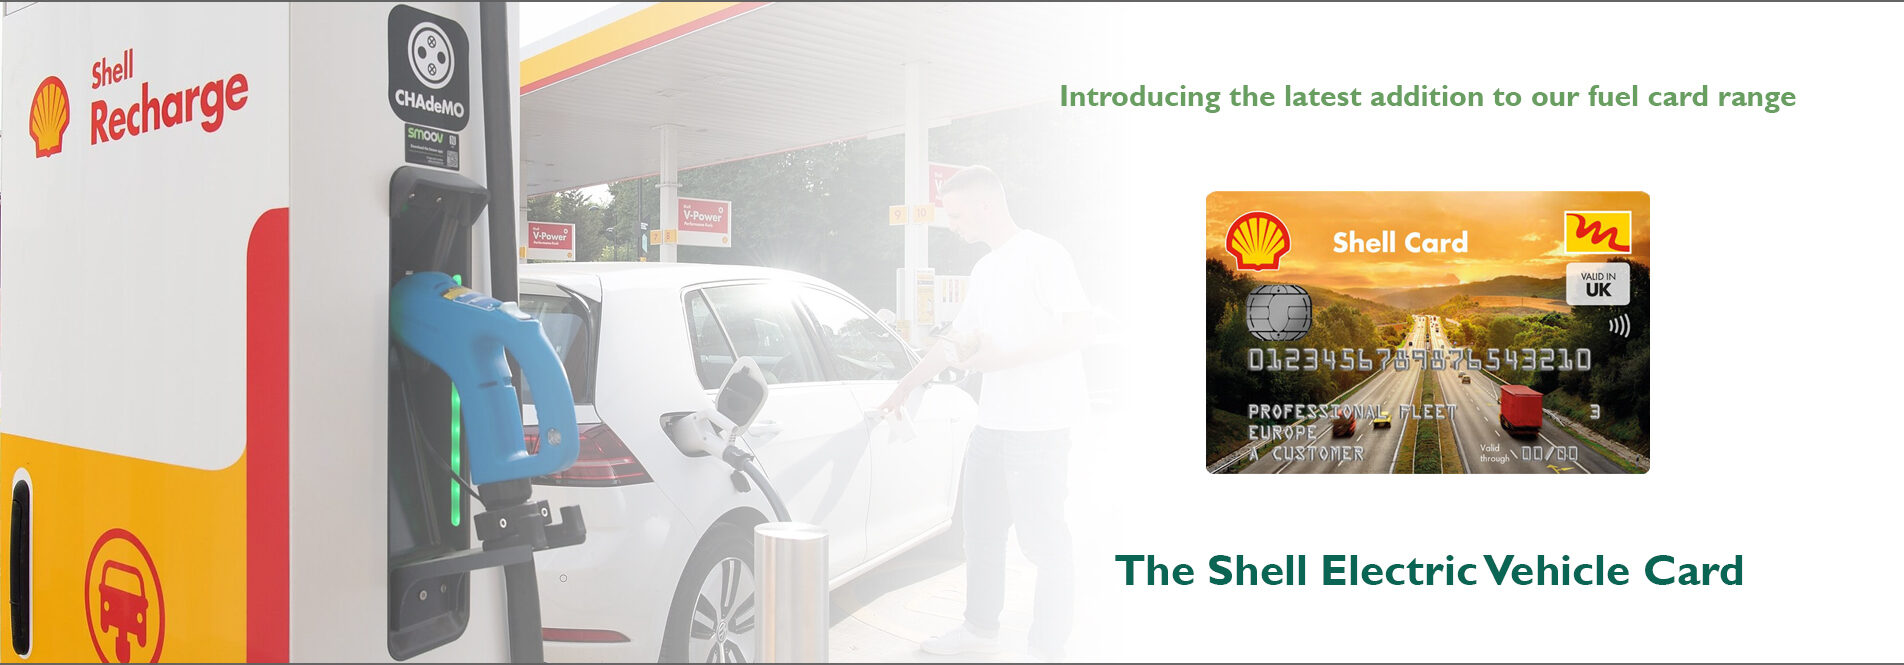 The Shell EV Card is a complete fueling solution in one card. One partner for all day-to-day transport expenses from fuel and EV charging, to serving drivers with quality food and rest facilities. Shell is leading the way to make charging easier and available for everyone.